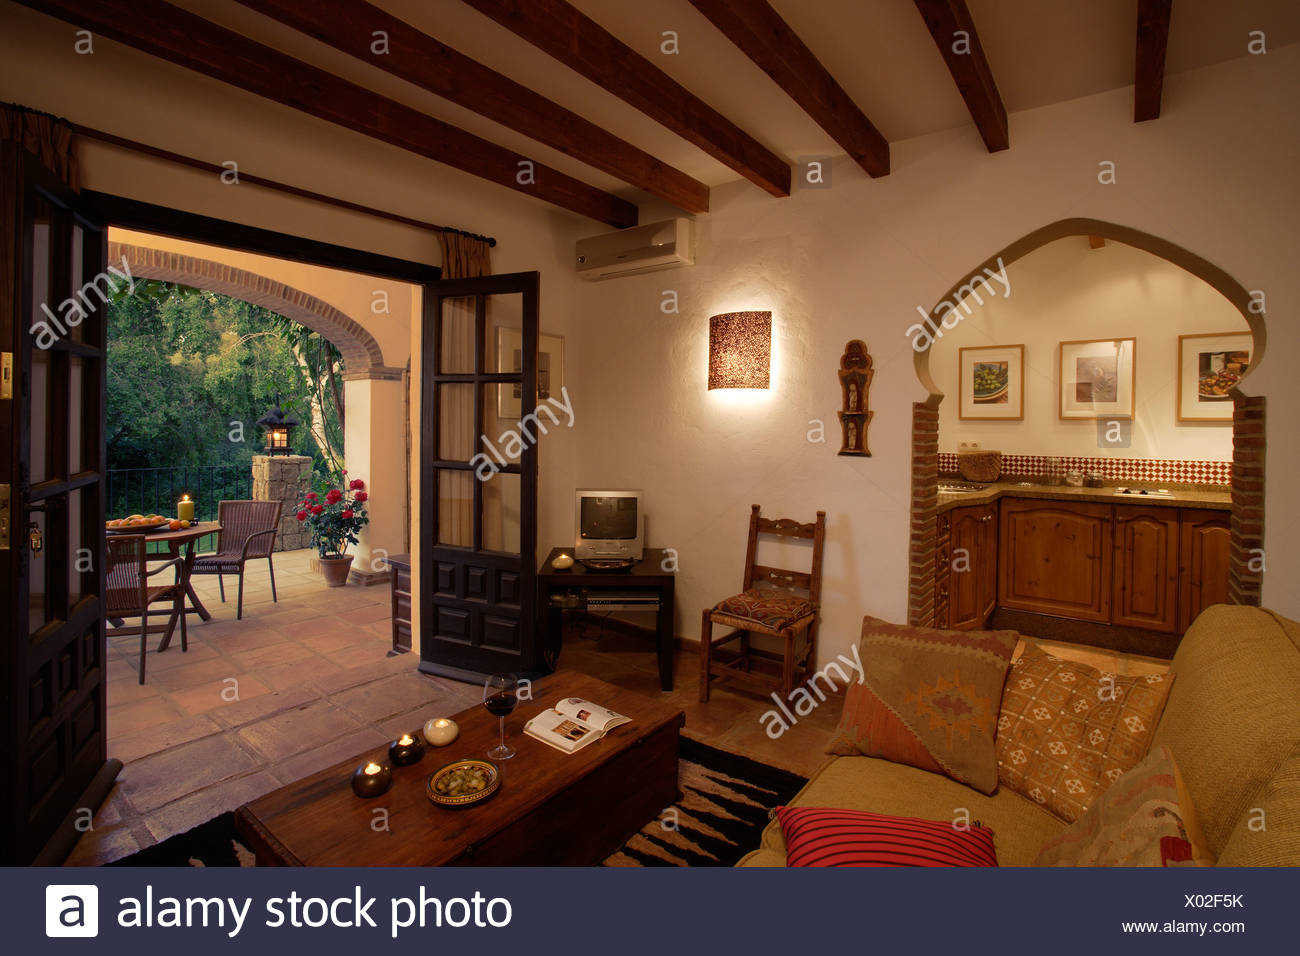 Spanish Living Room With Arched Doorway To Kitchen And Double Doors Open To  Veranda